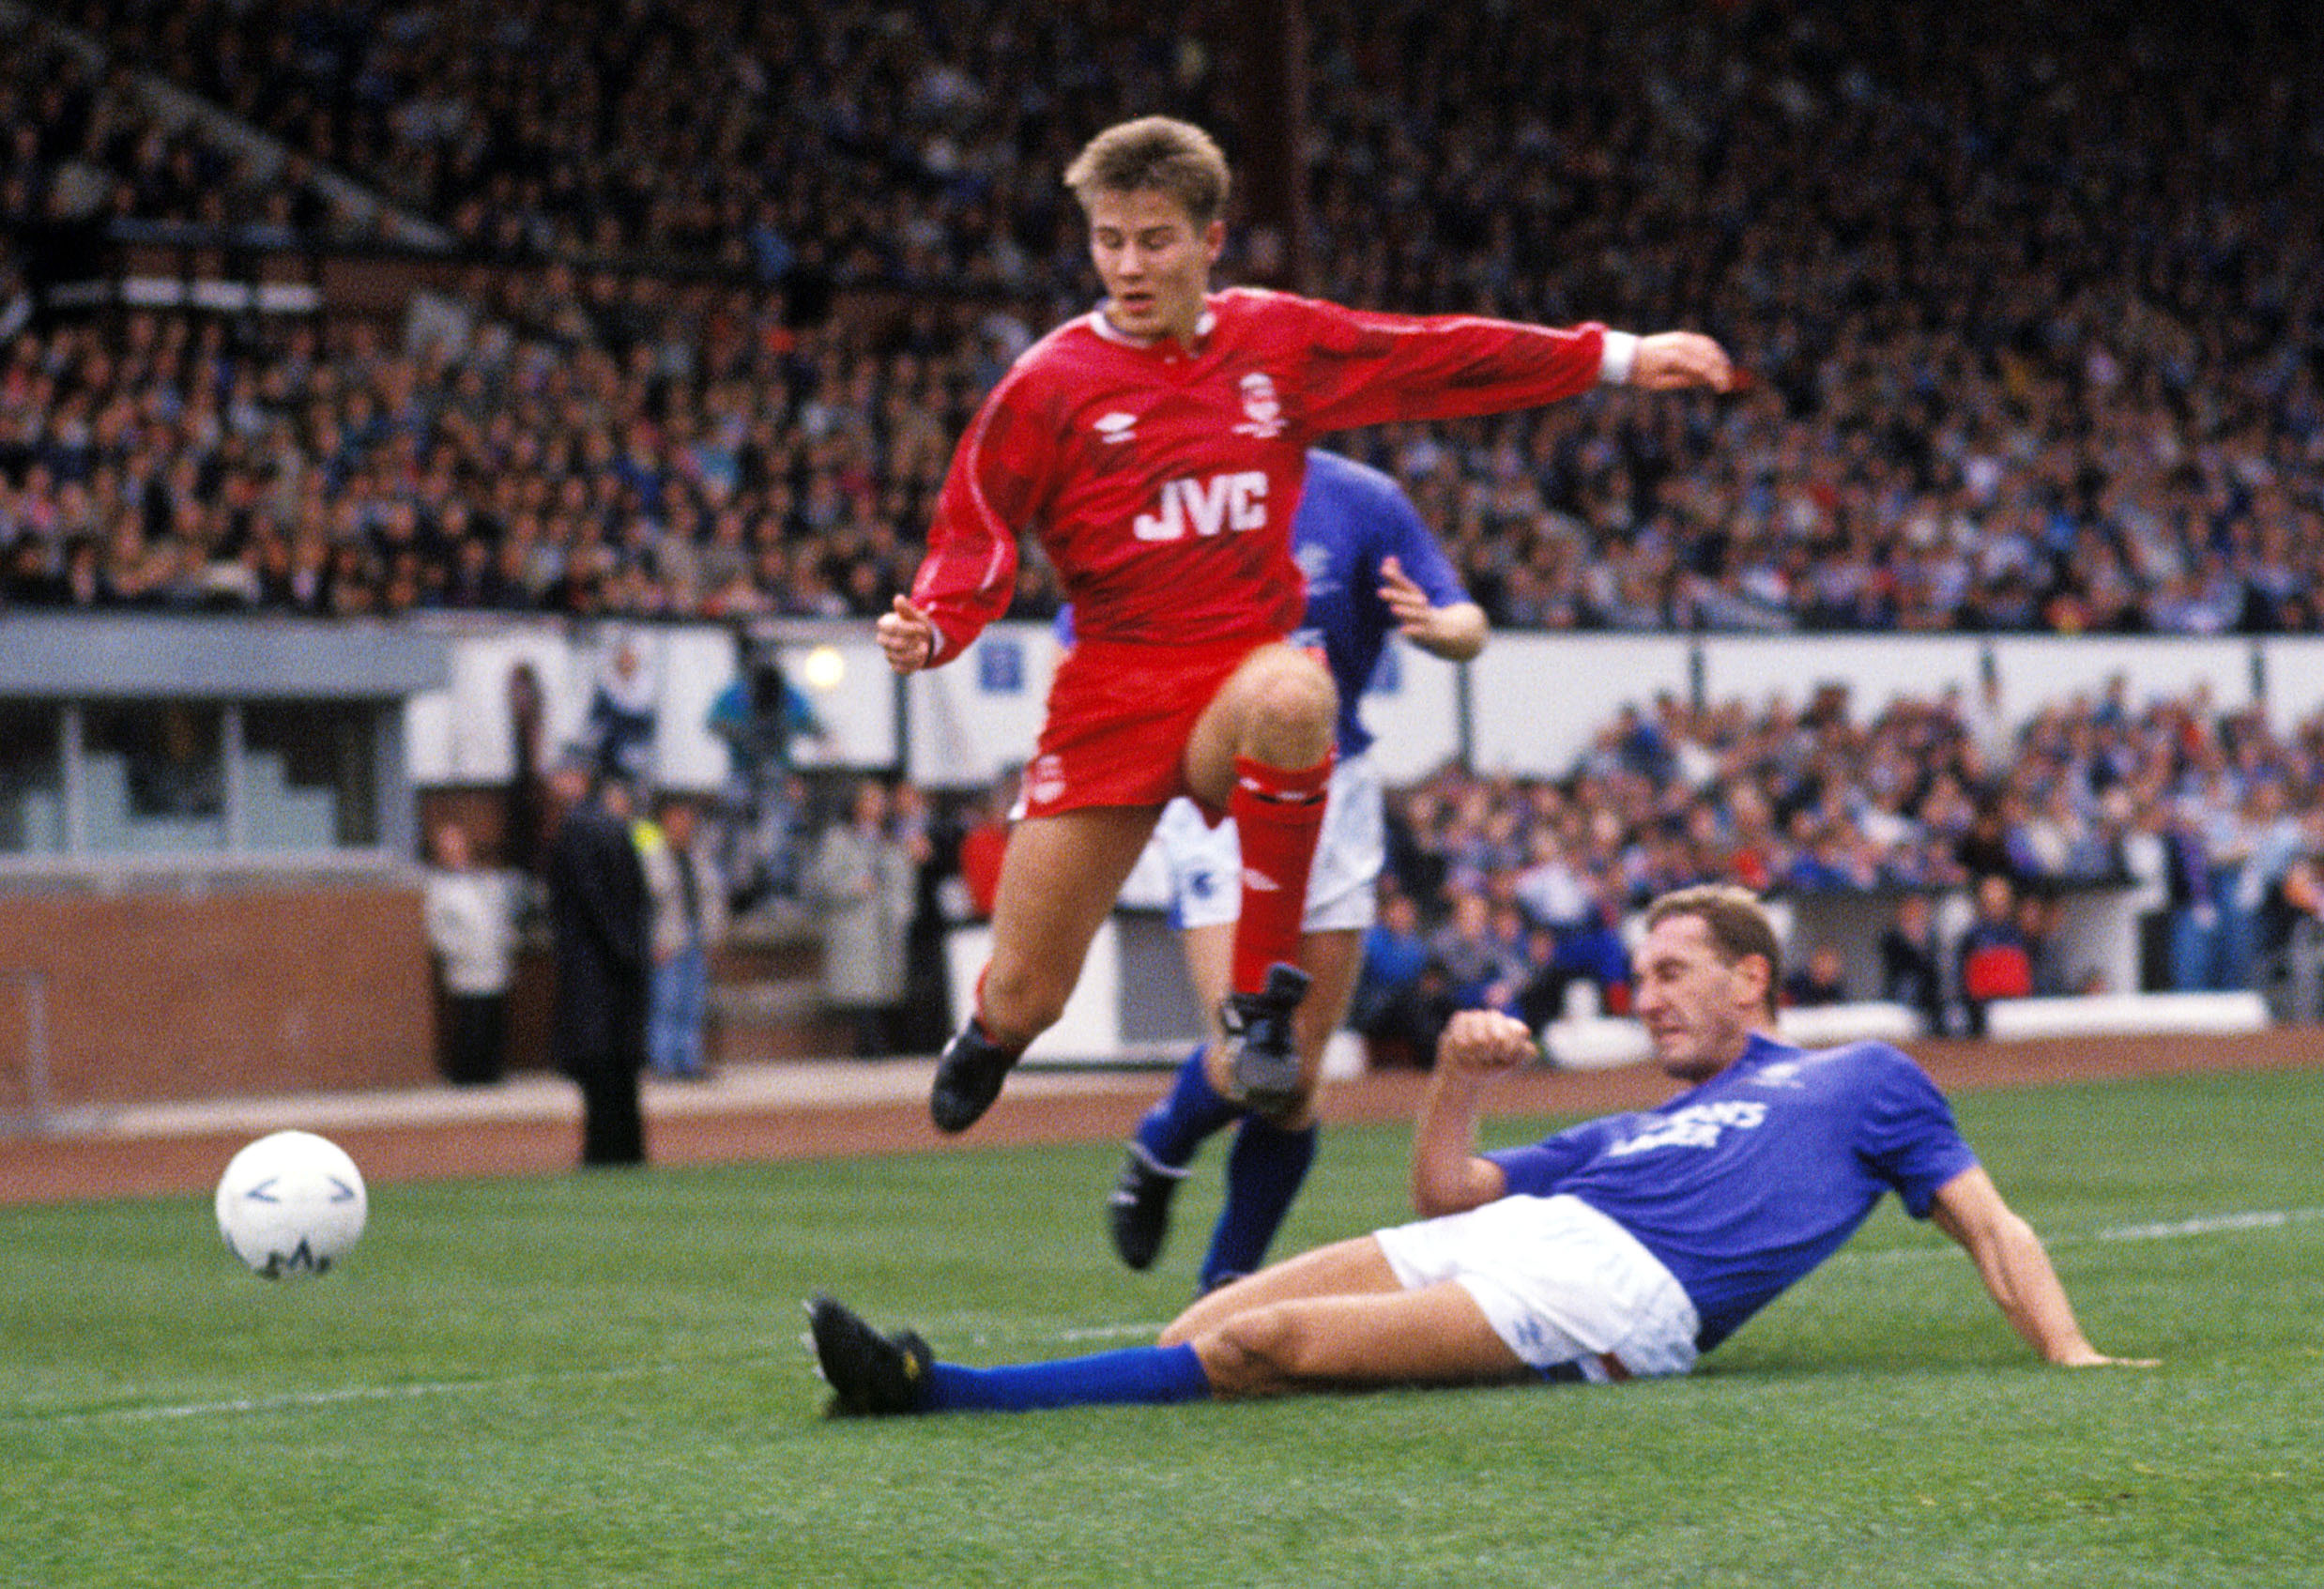 Aberdeen's Eoin Jess, left, rides a tackle from Terry Butcher when the Dons won the Skol Cup